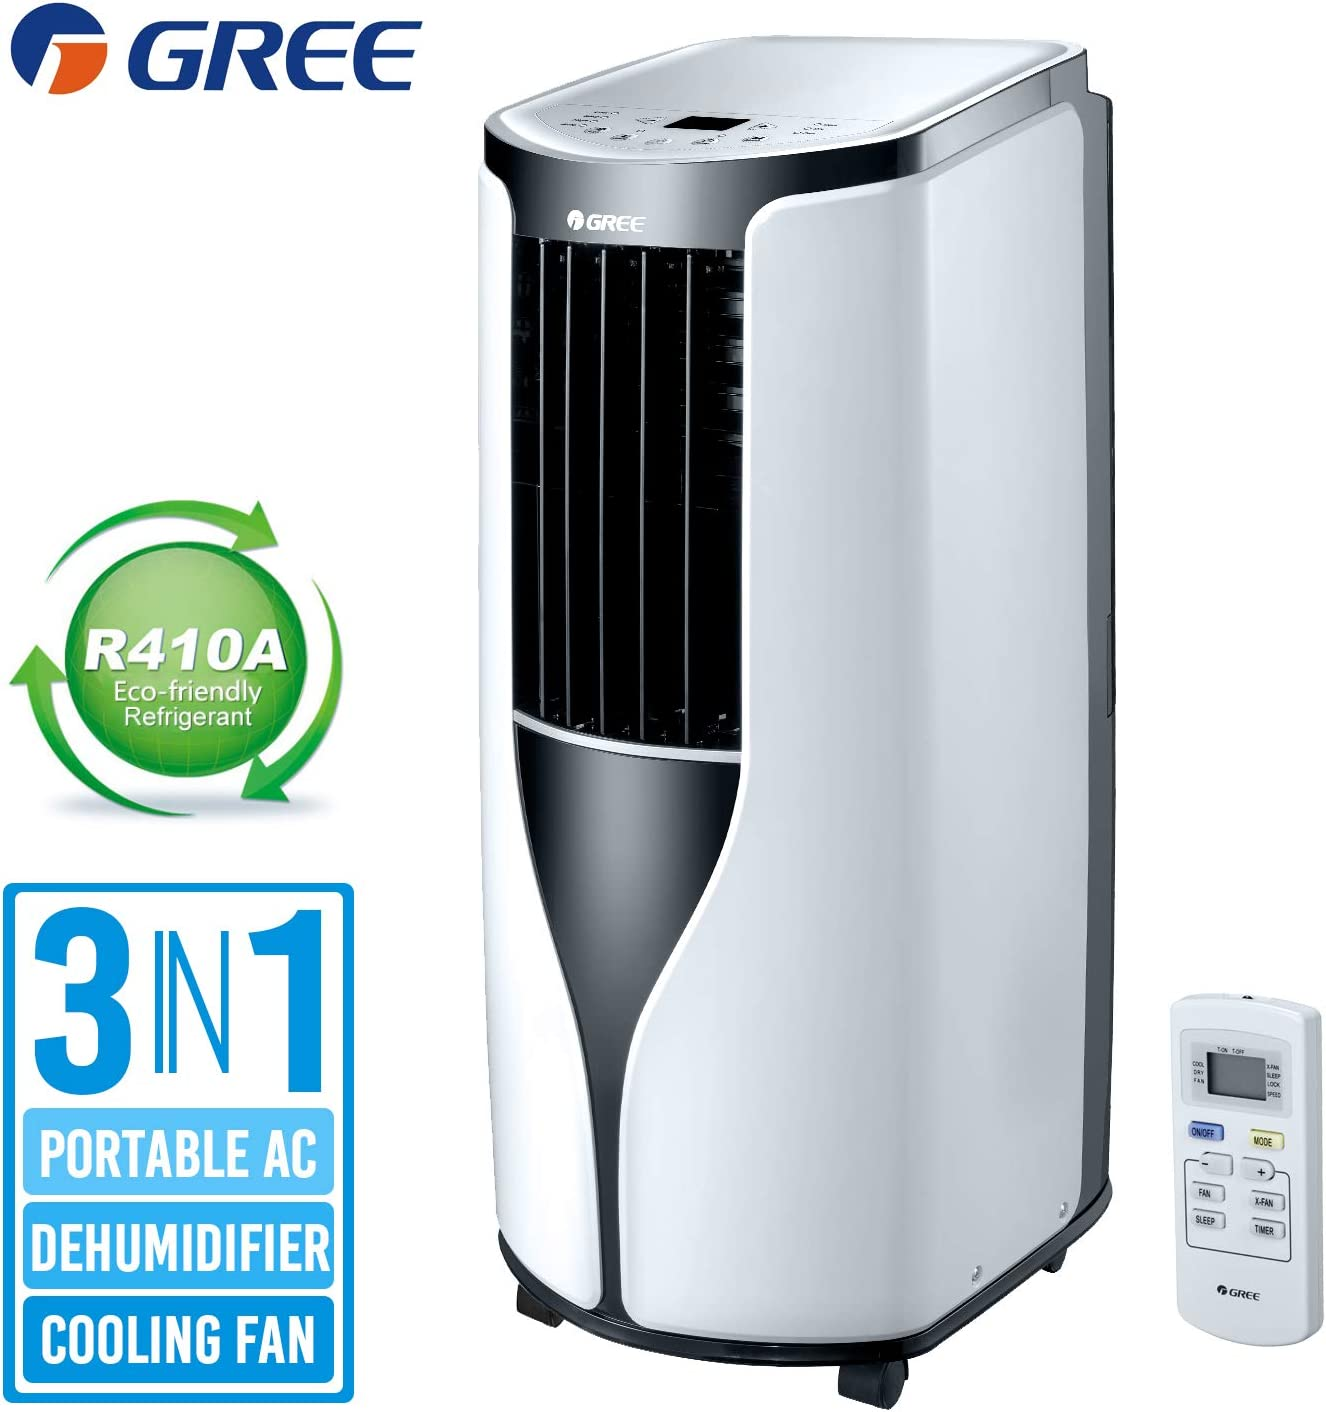 Gree Shiny Air Conditioner 6000 BTU 300 Sq.Ft 3 in 1 Portable Air Conditioner/Dehumidifier/Cooling Fan Remote Control and 24 Hour Timer, Quiet Energy Efficient A, Window Kit White